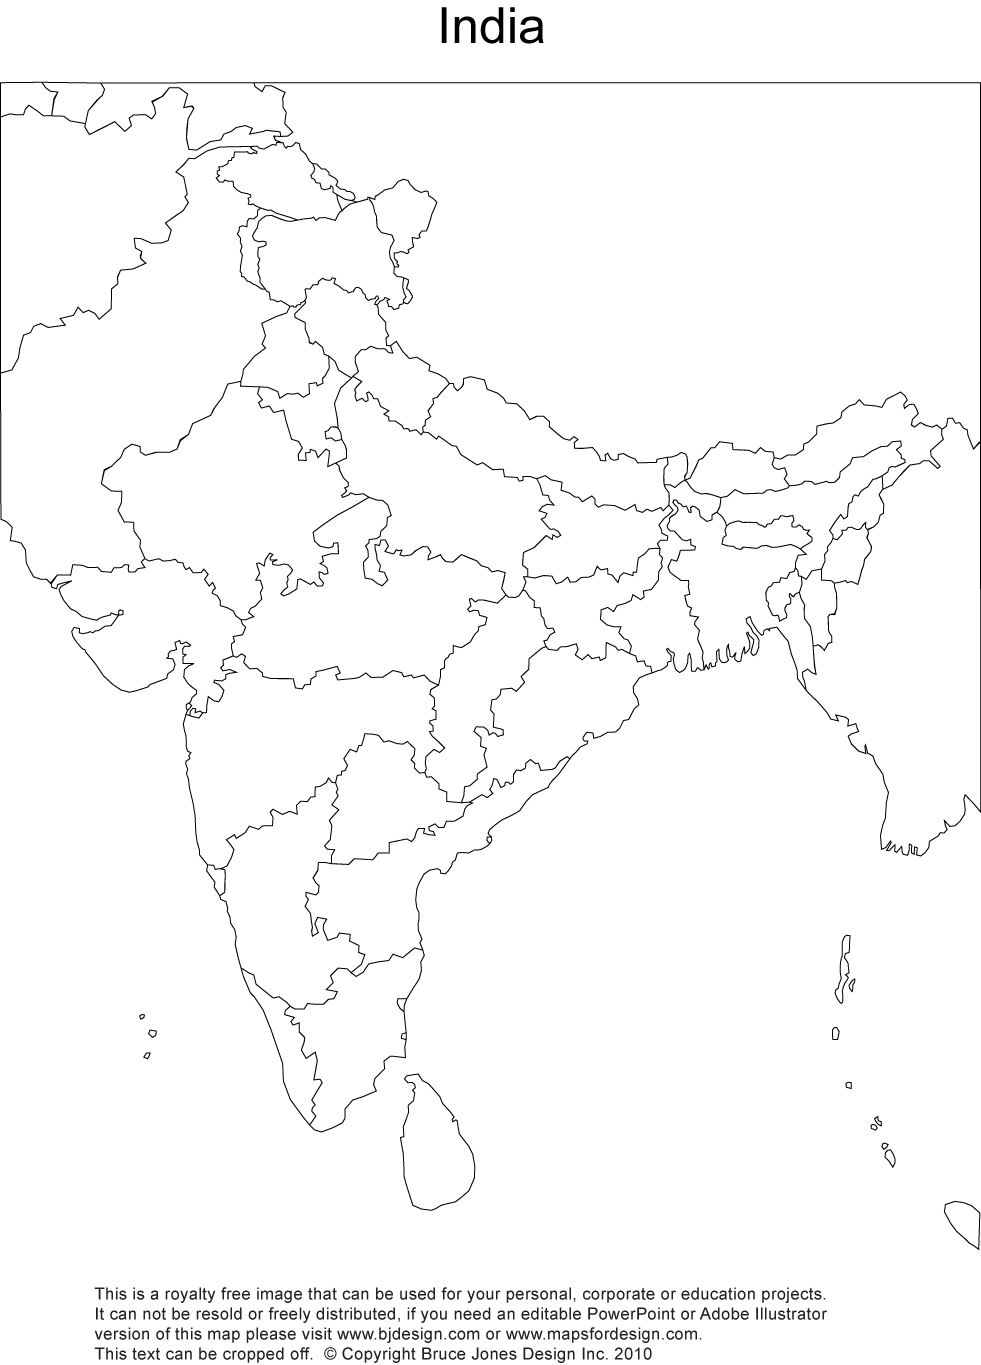 Printable Outline Map Of India For School Du An  Ech